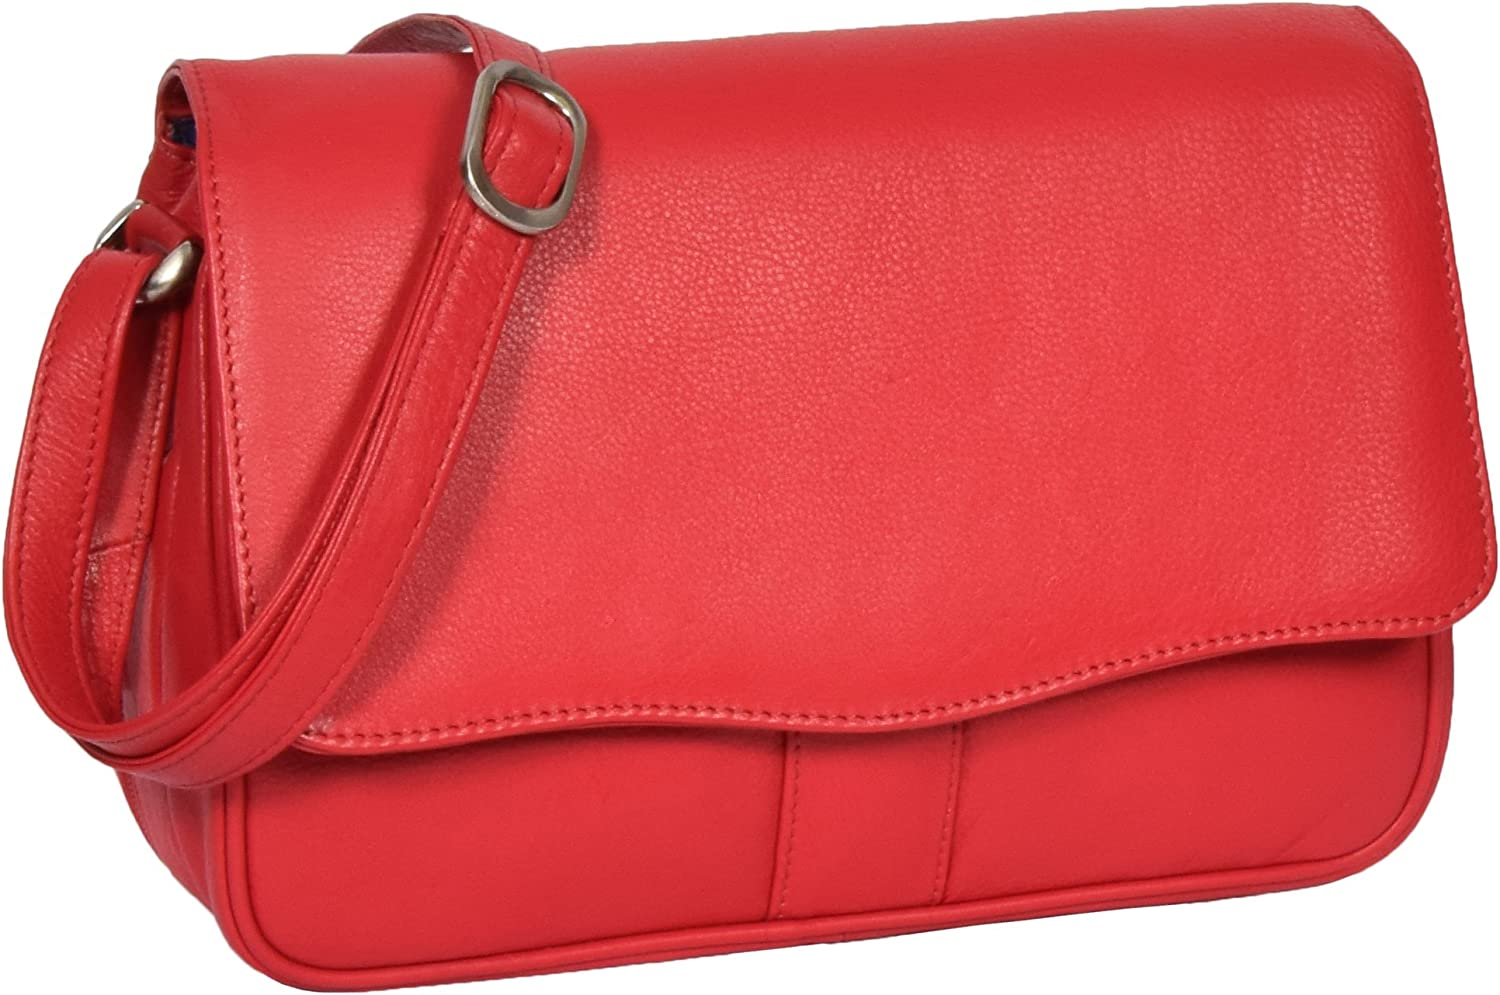 House of Leather Ladies Classic Shoulder Organiser Cross Body Messenger Bag Satchel Matilda Red